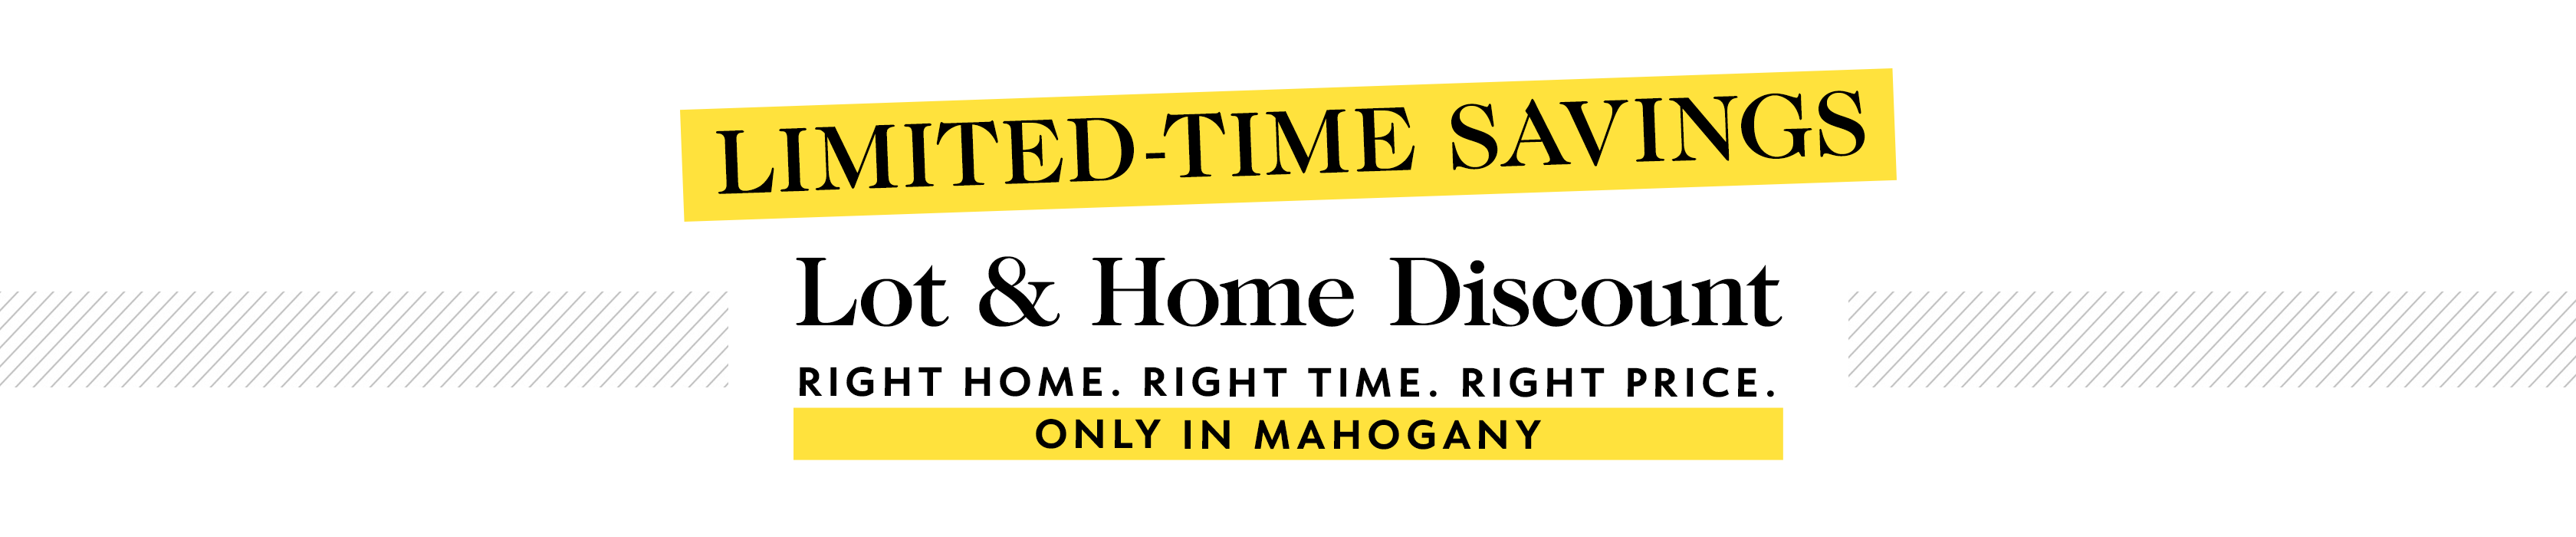 banner image: Limited Time Savings. Lot and Home Discount Only in Mahogany